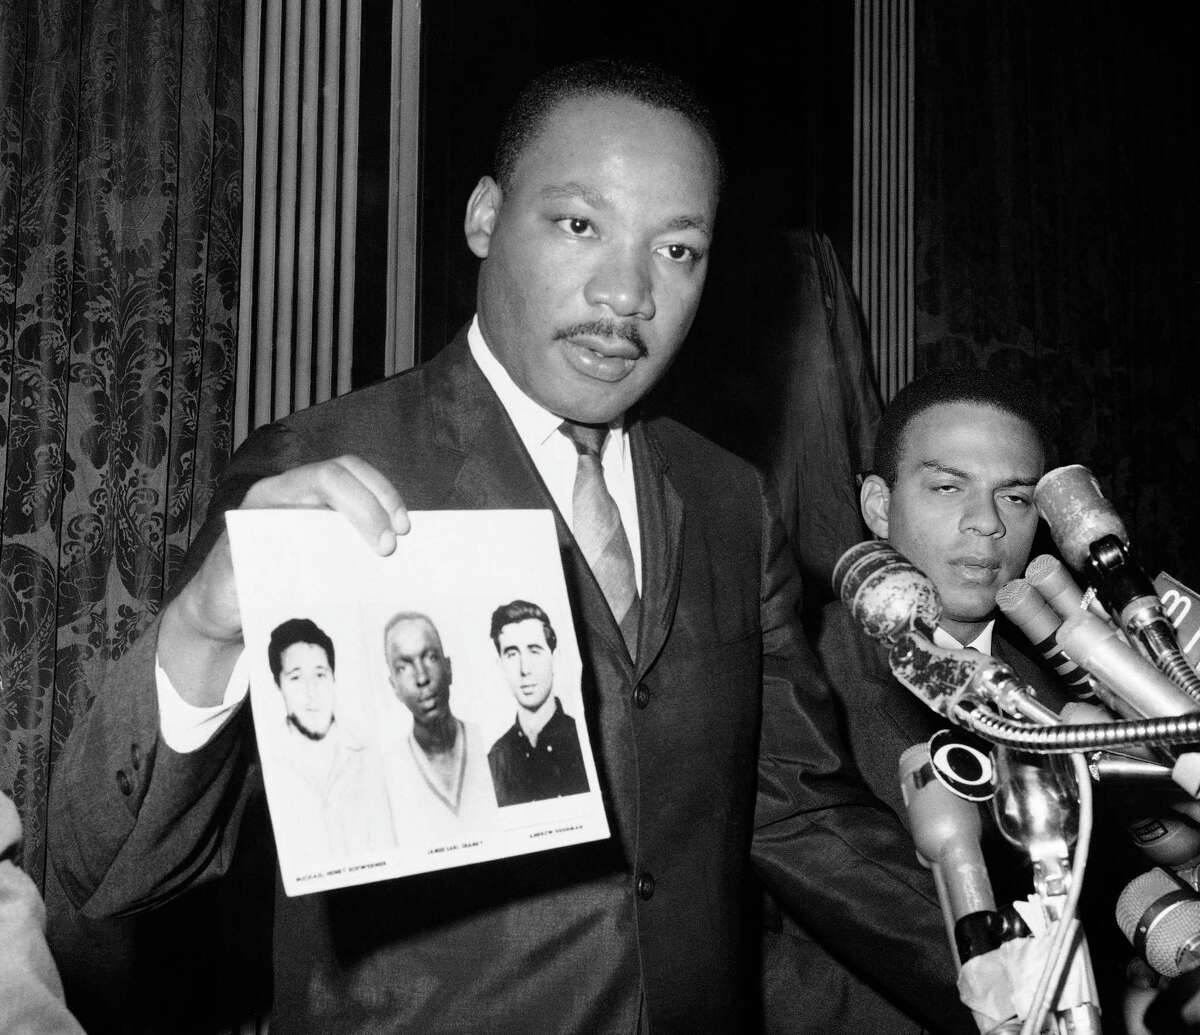 Martin Luther King Jr. holds up the photos of murdered civil rights workers Michael Schwerner, James Chaney, and Andrew Goodman. They died fighting to expand the right to vote. Nearly 60 years later, voting rights are under assault.